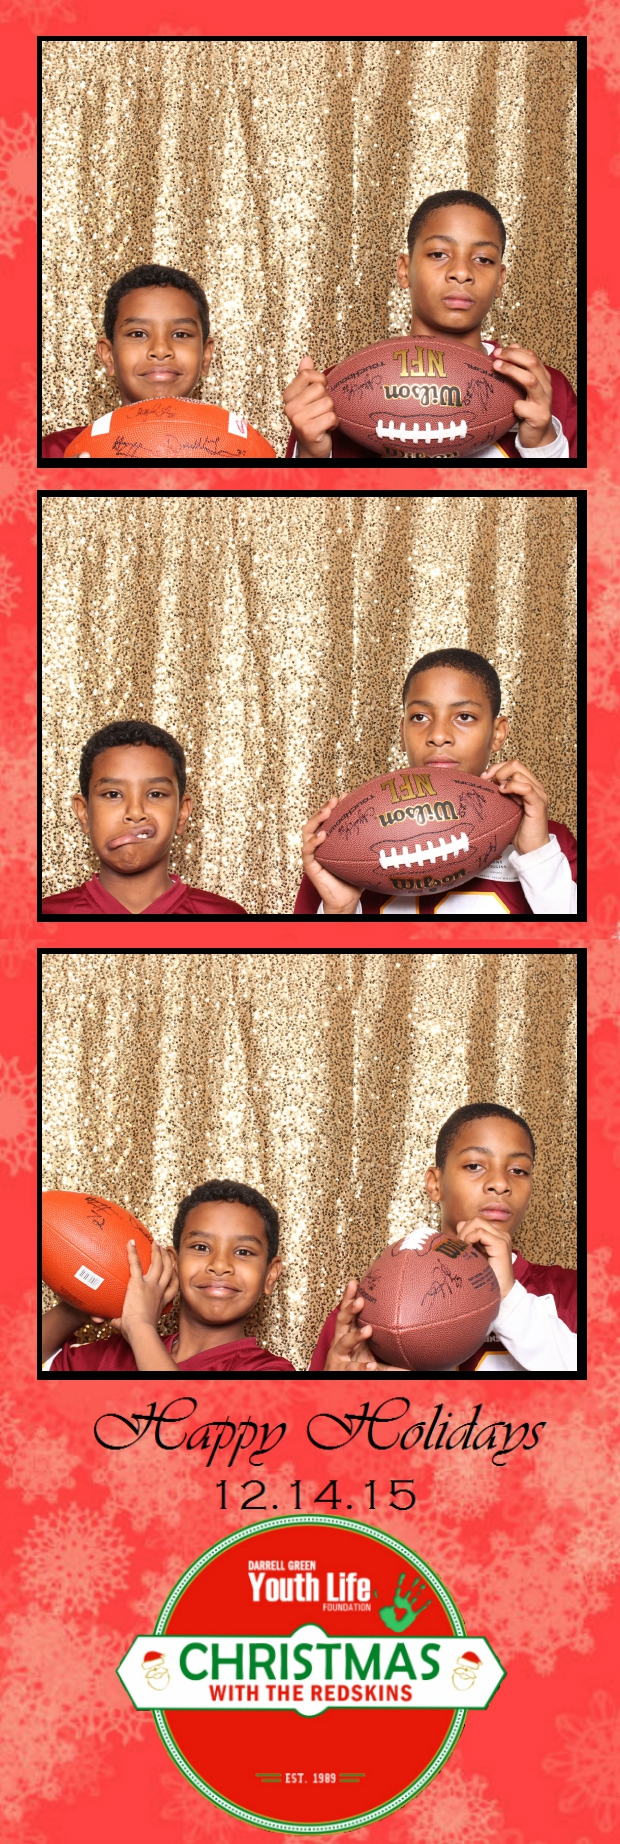 Guest House Events Photo Booth DGYLF Strips (21).jpg